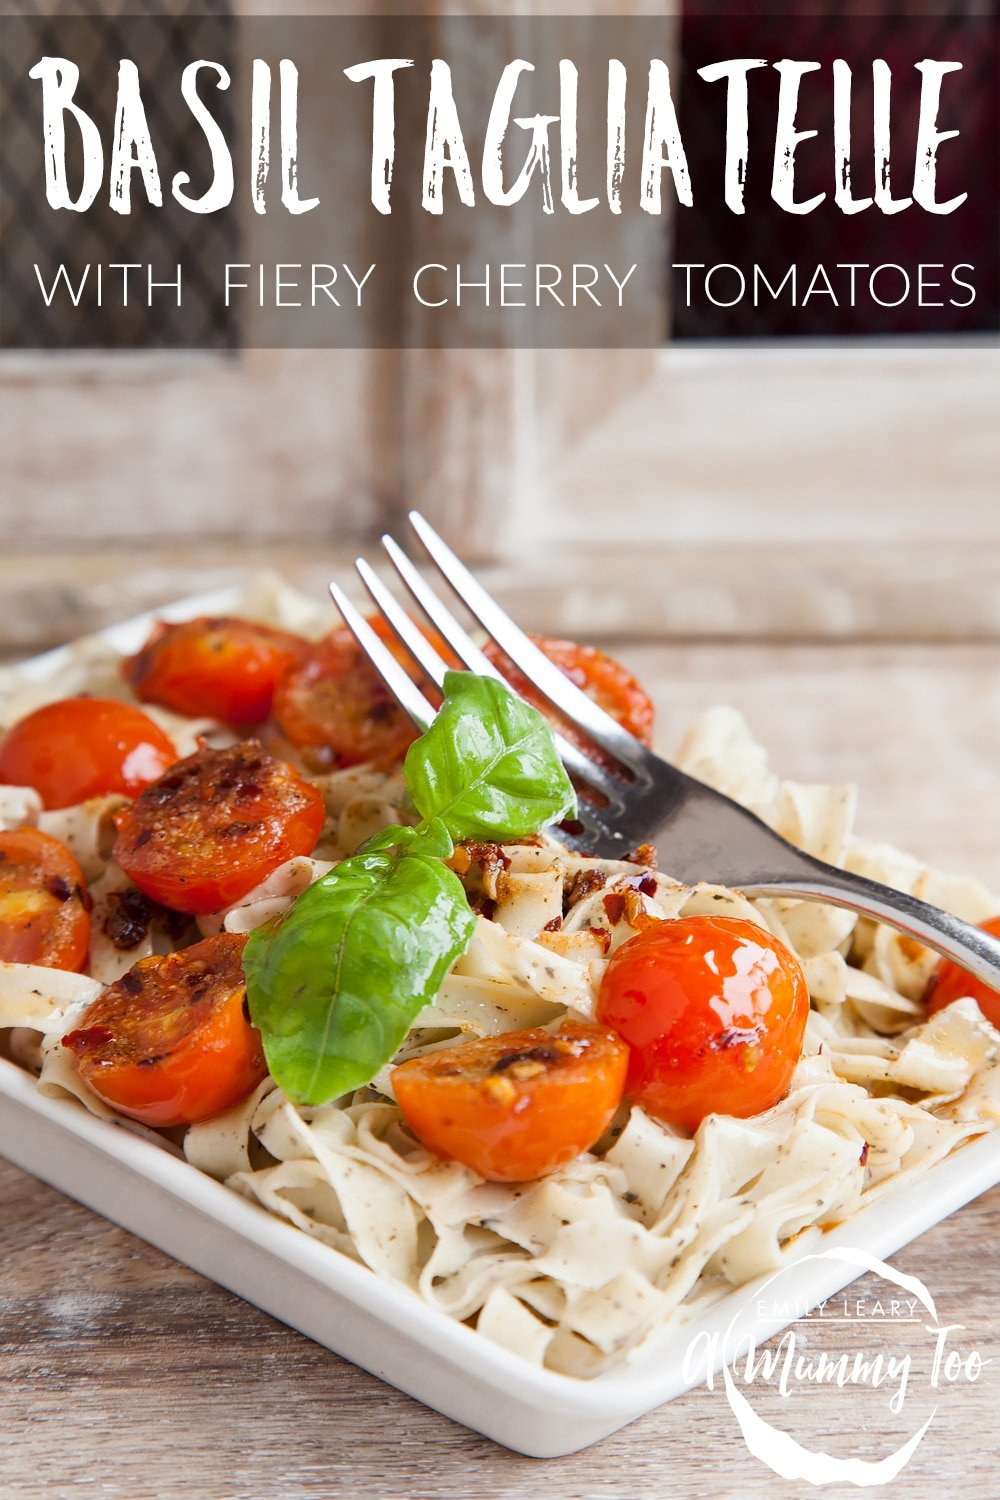 This basil tagliatelle with fiery cherry tomatoes features basil flecked throughout for a delicious flavour